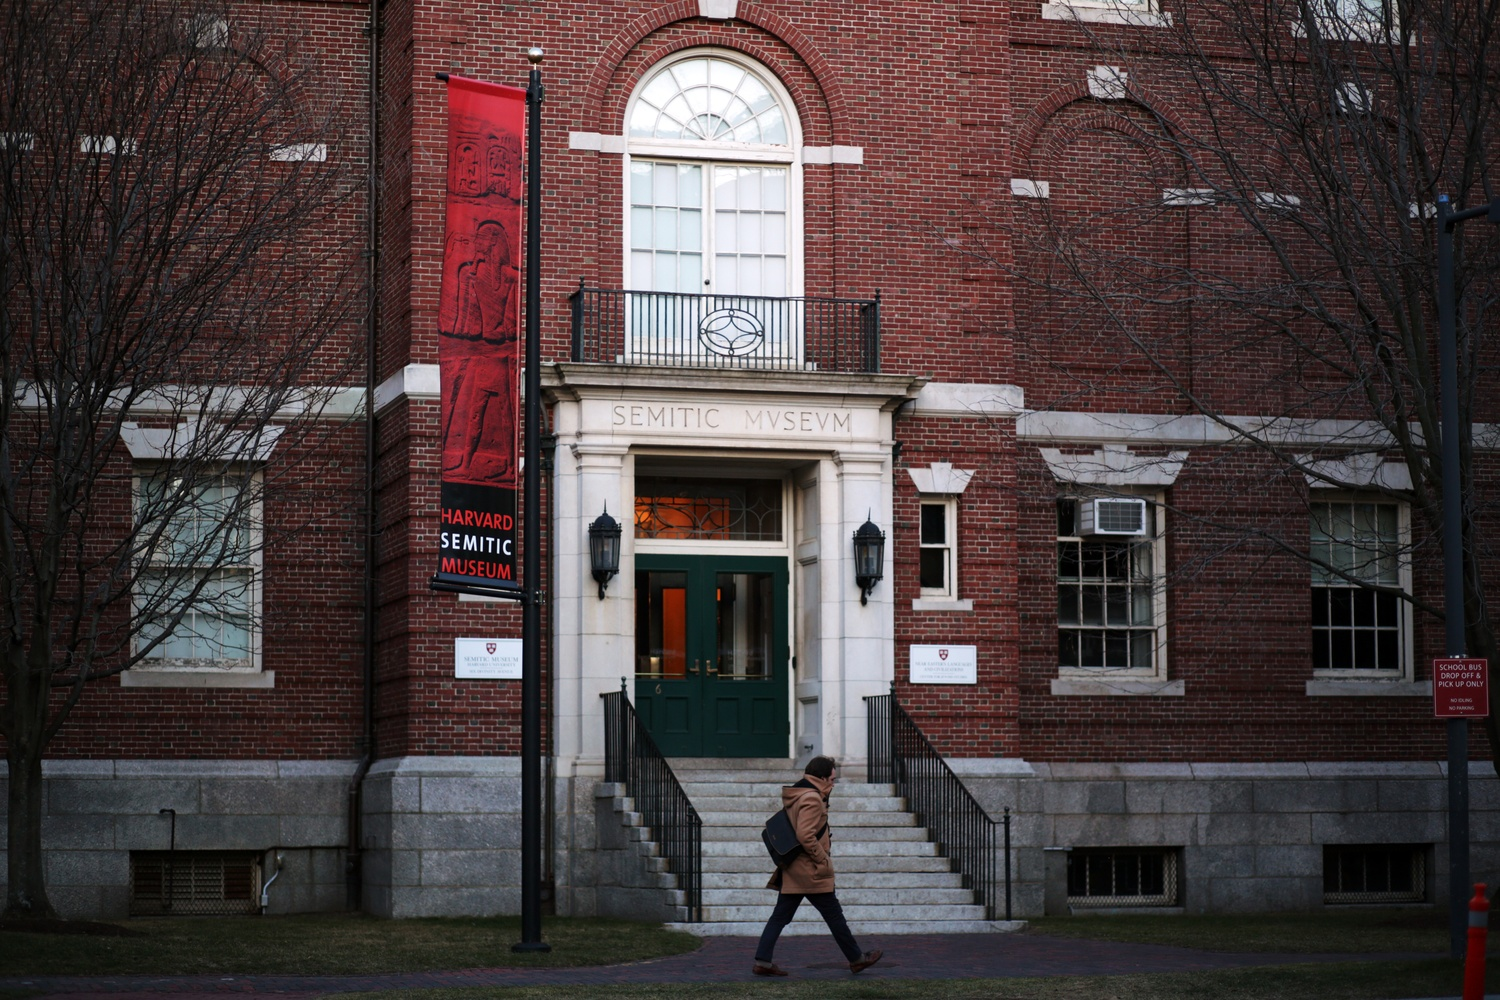 Located at 6 Divinity Ave., the Harvard Semitic Museum houses Harvard's archaeological collections from the Ancient Near East.